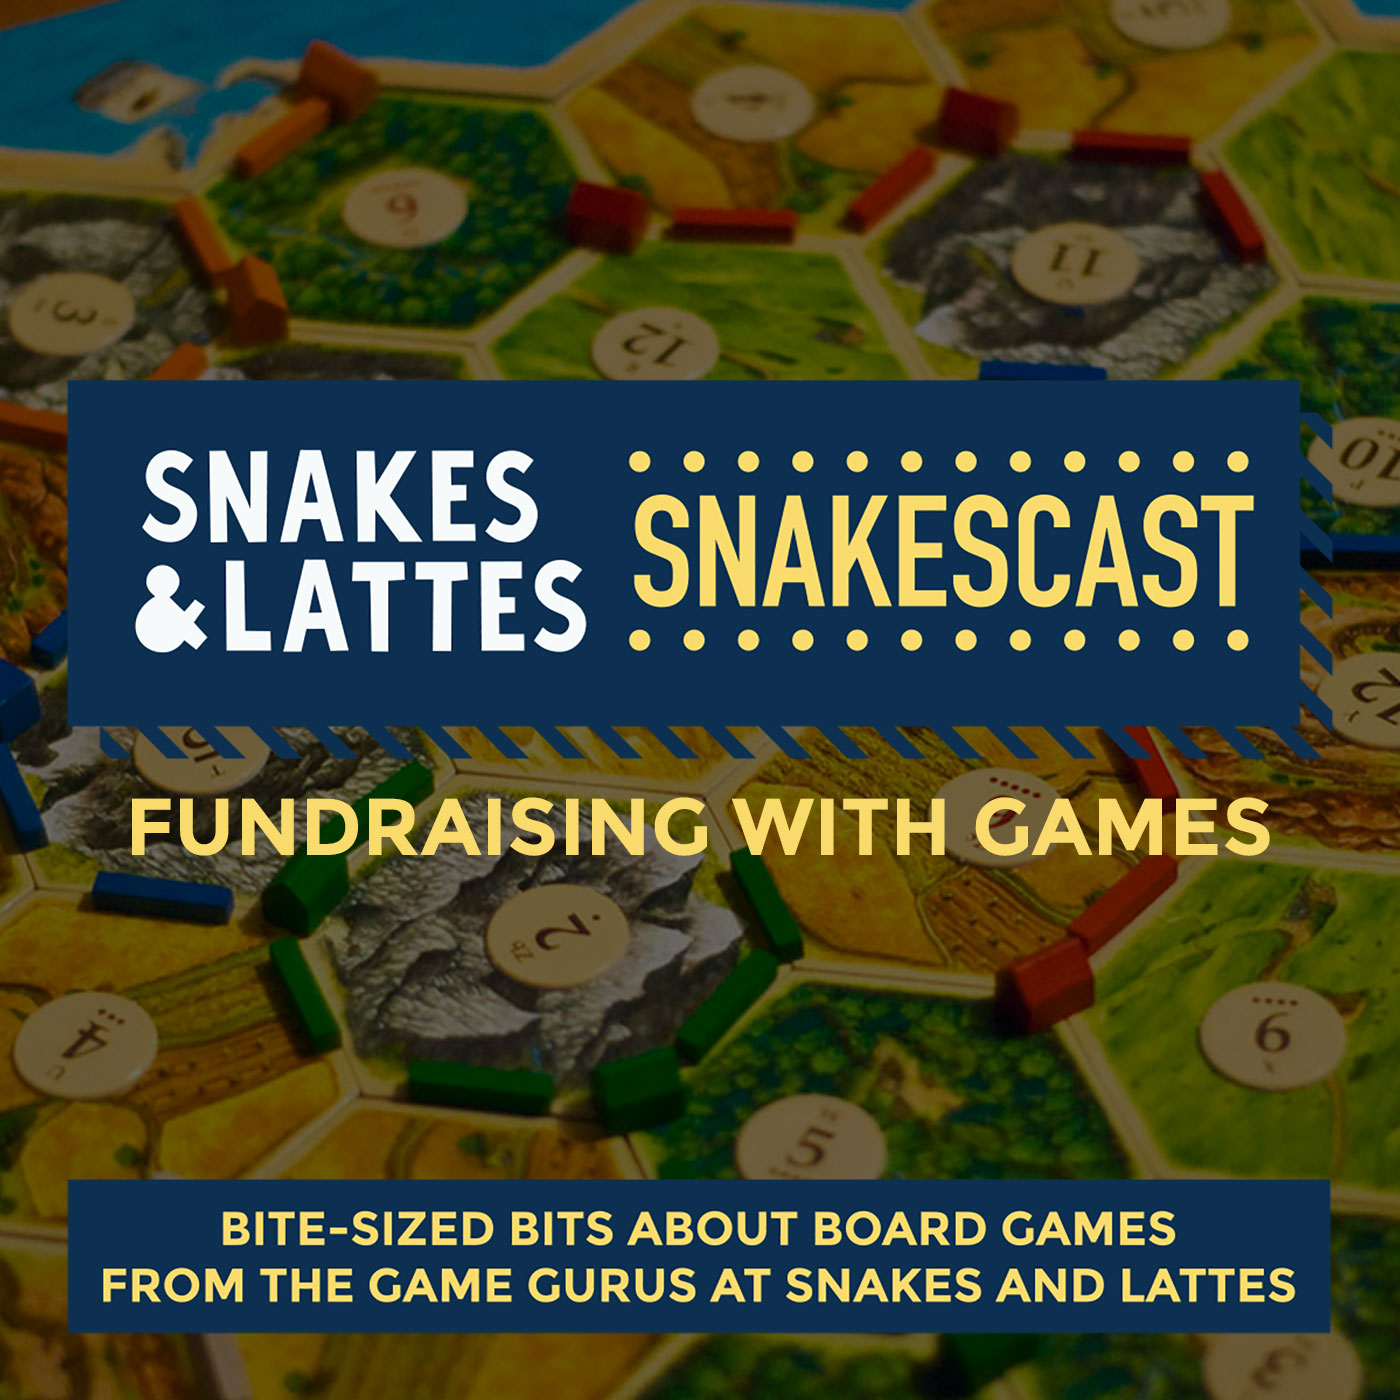 Fundraising with games, Part 2 - Other fundraisers and what we learned